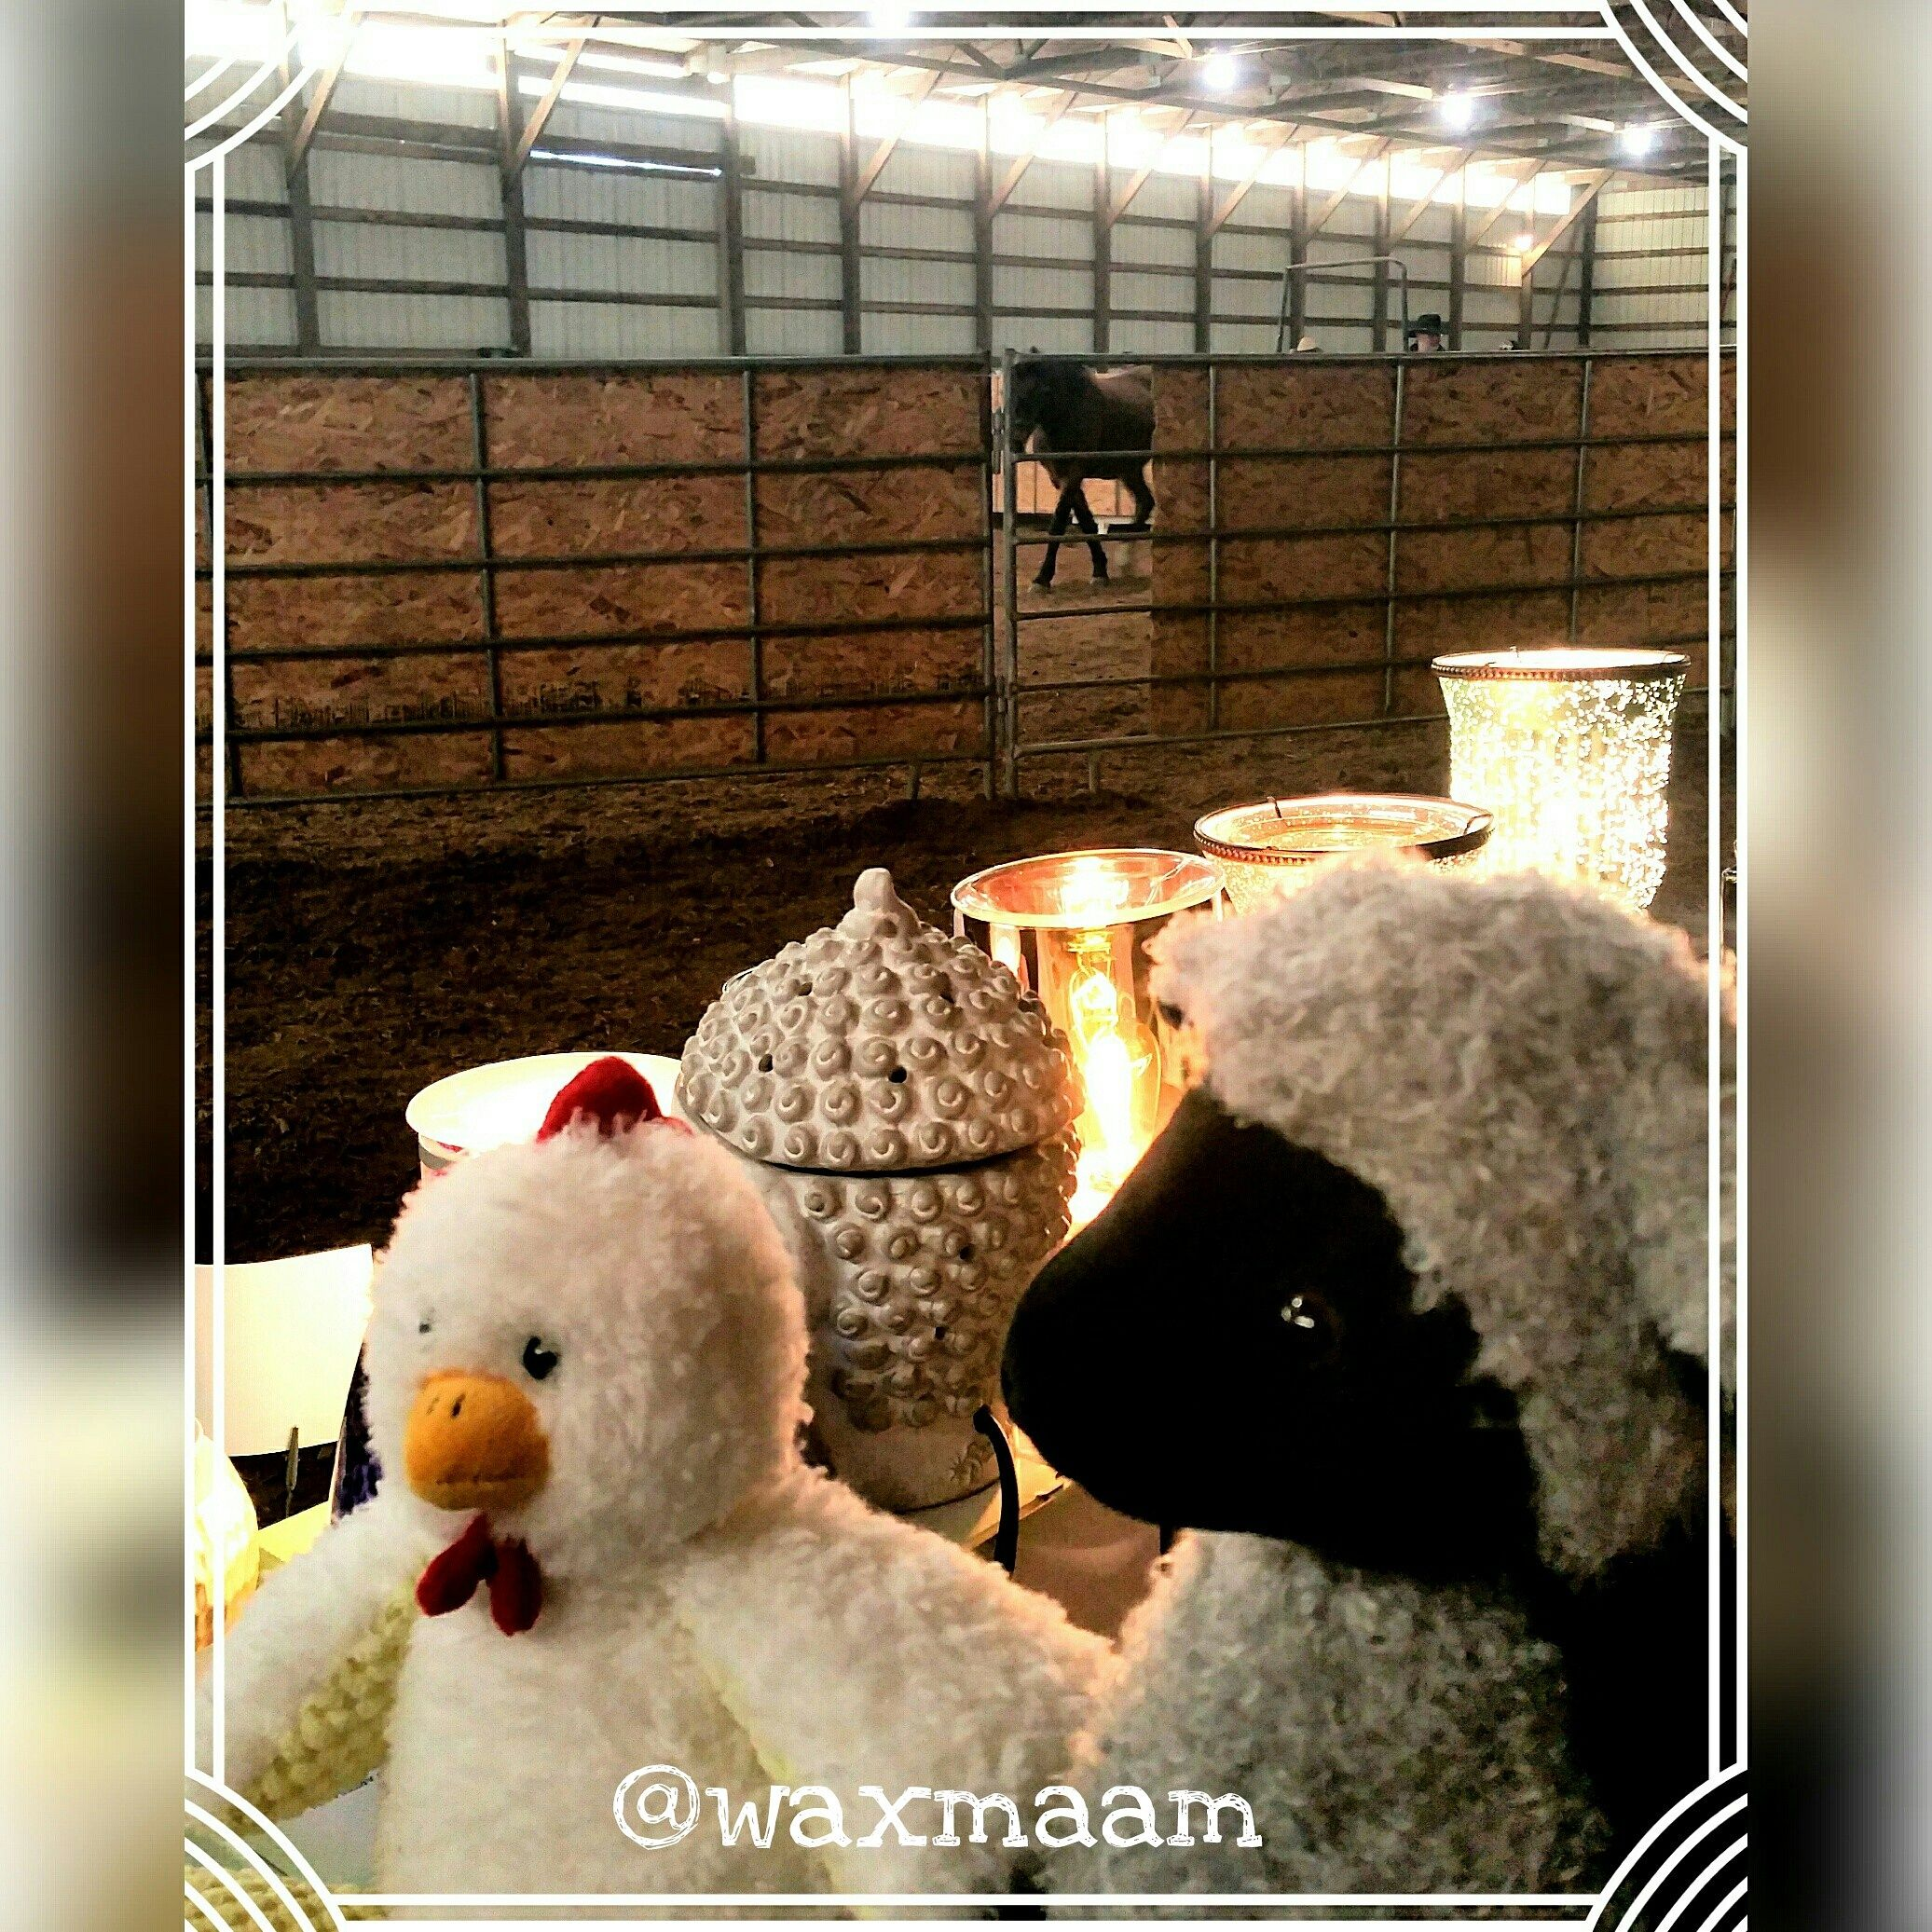 Cluck and Lulu hanging out with the horses today. Making it #smell good in here! #Horse and #Hound, Lee's Summit #Equestrian. Til 4:30pm. Stop by and see us. #Scentsy #waxmaam